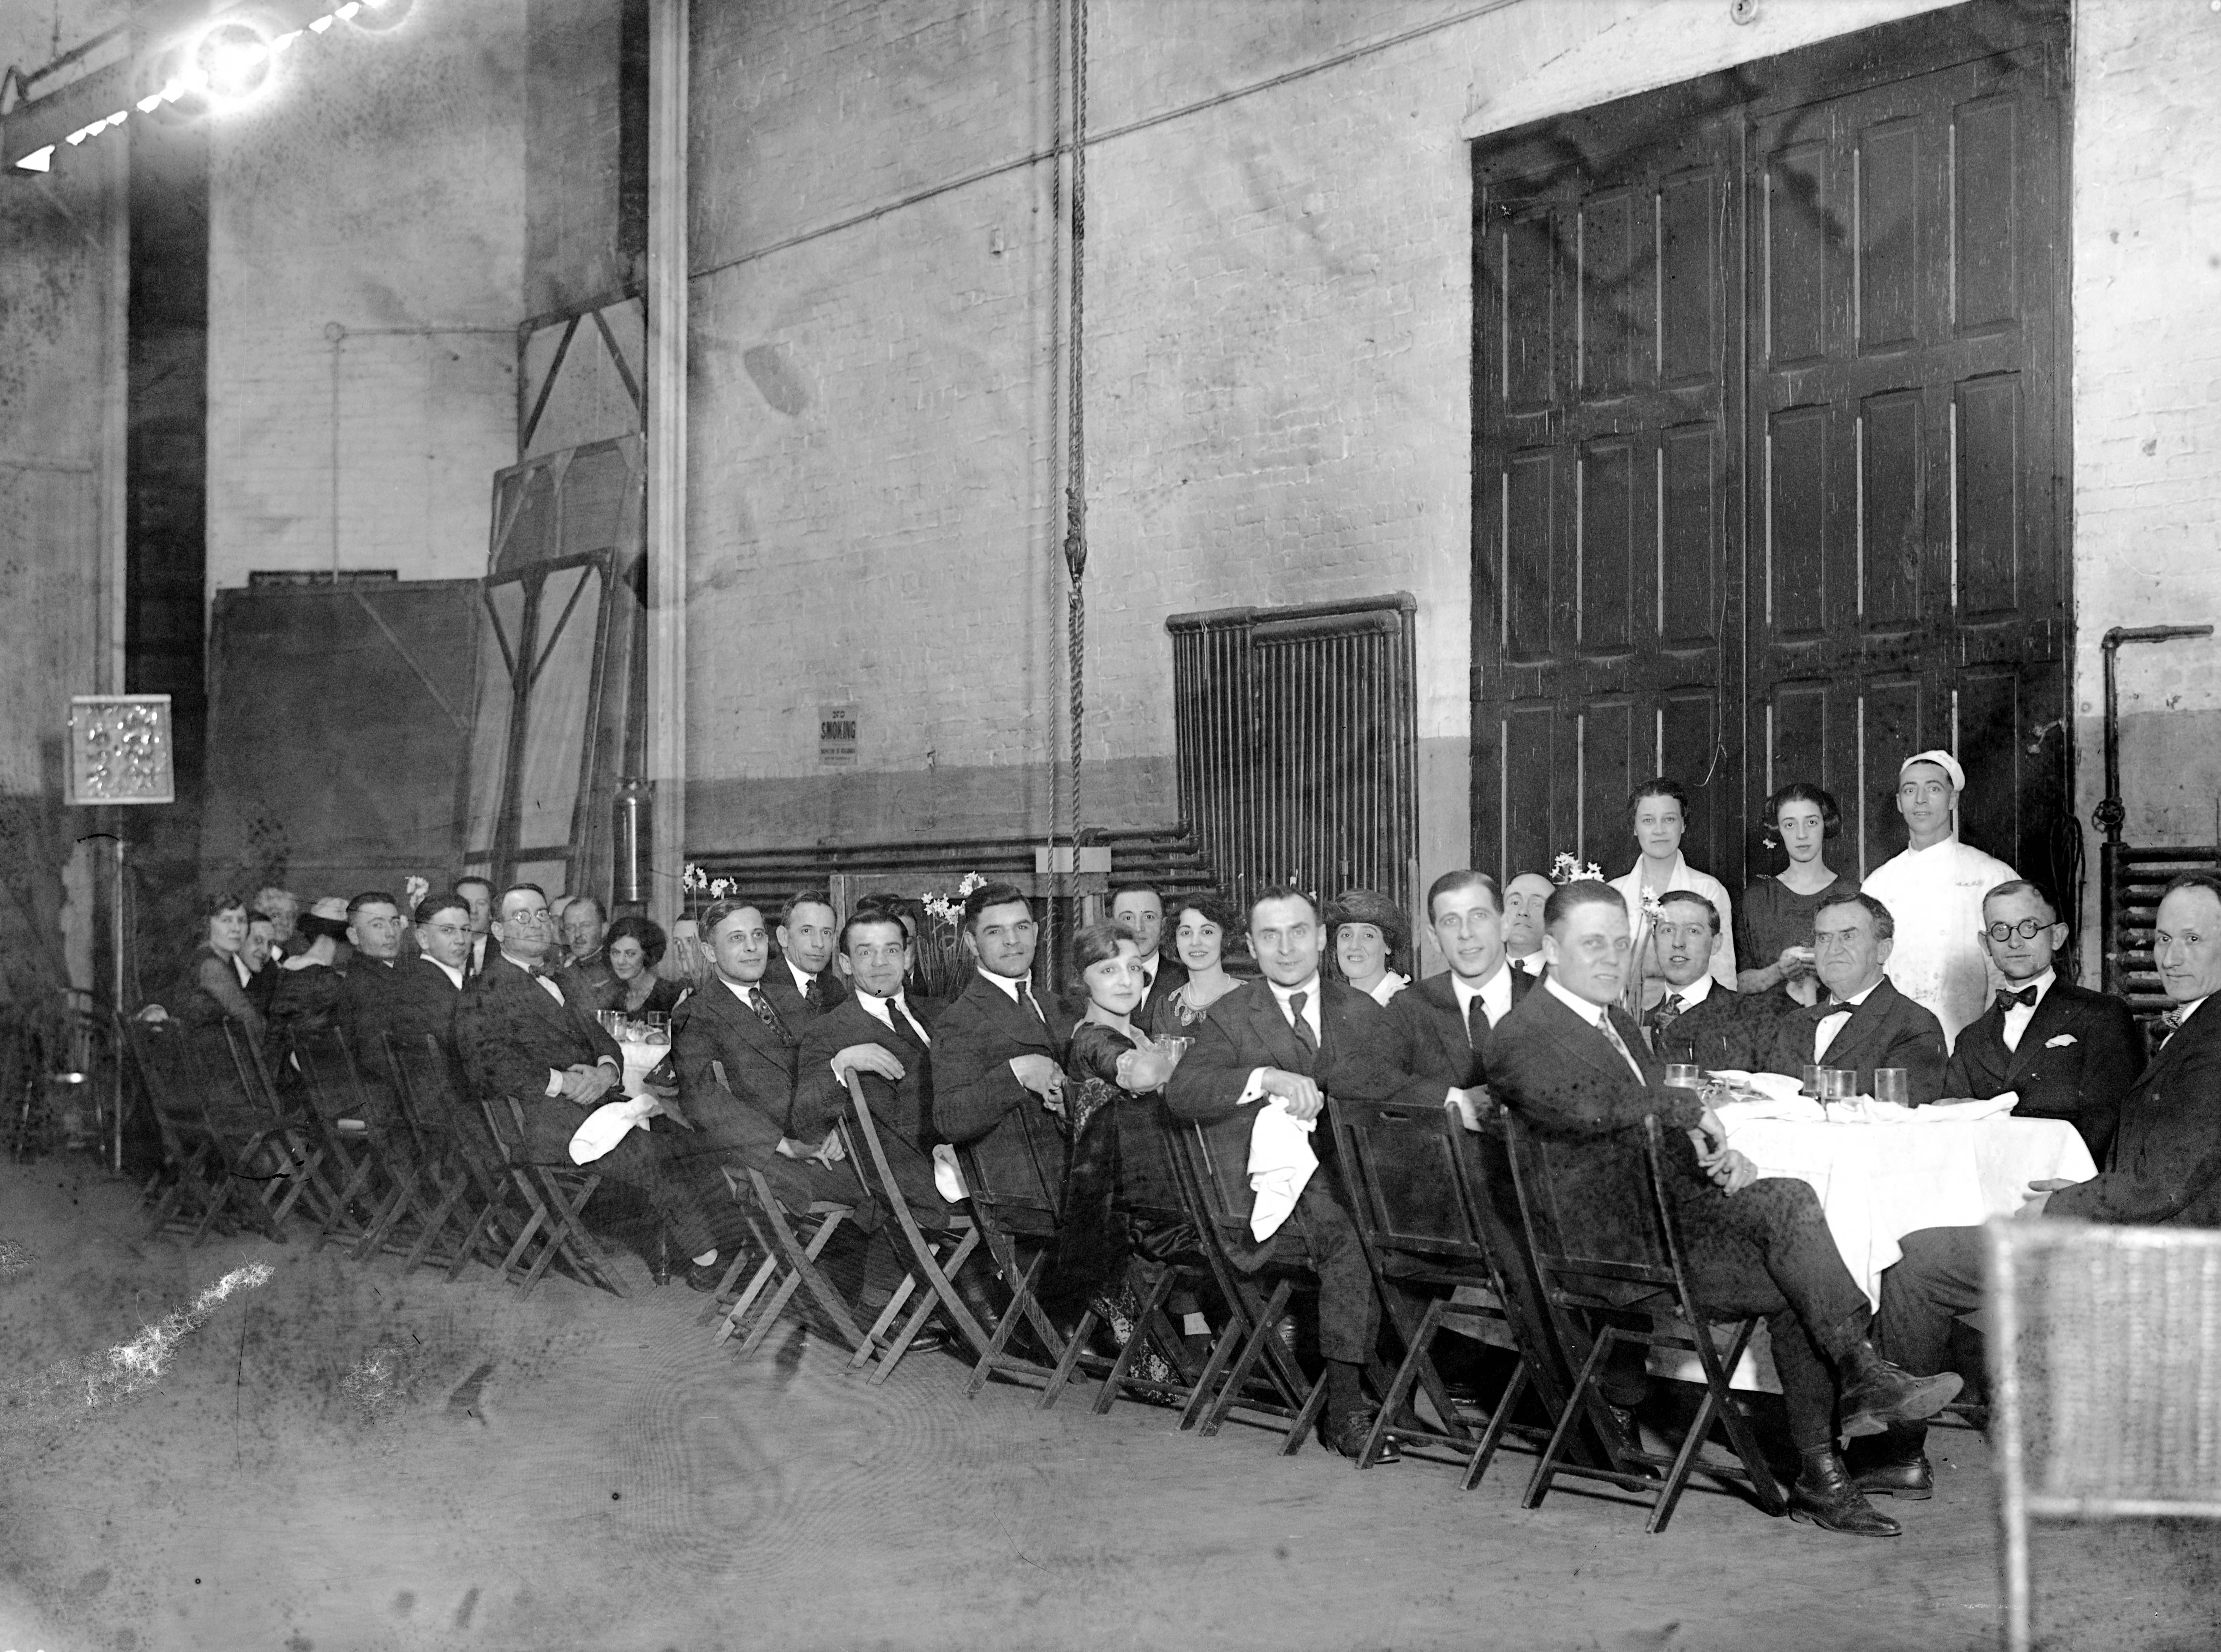 New Grand Theater (aka Grand Opera House) Christmas party for employees and vaudeville actors.  This appears to be backstage at the theatre at 209-215 Sycamore St.  Edward J. Moskowitz, the stage manager, is seated at the end of the table in 1920.